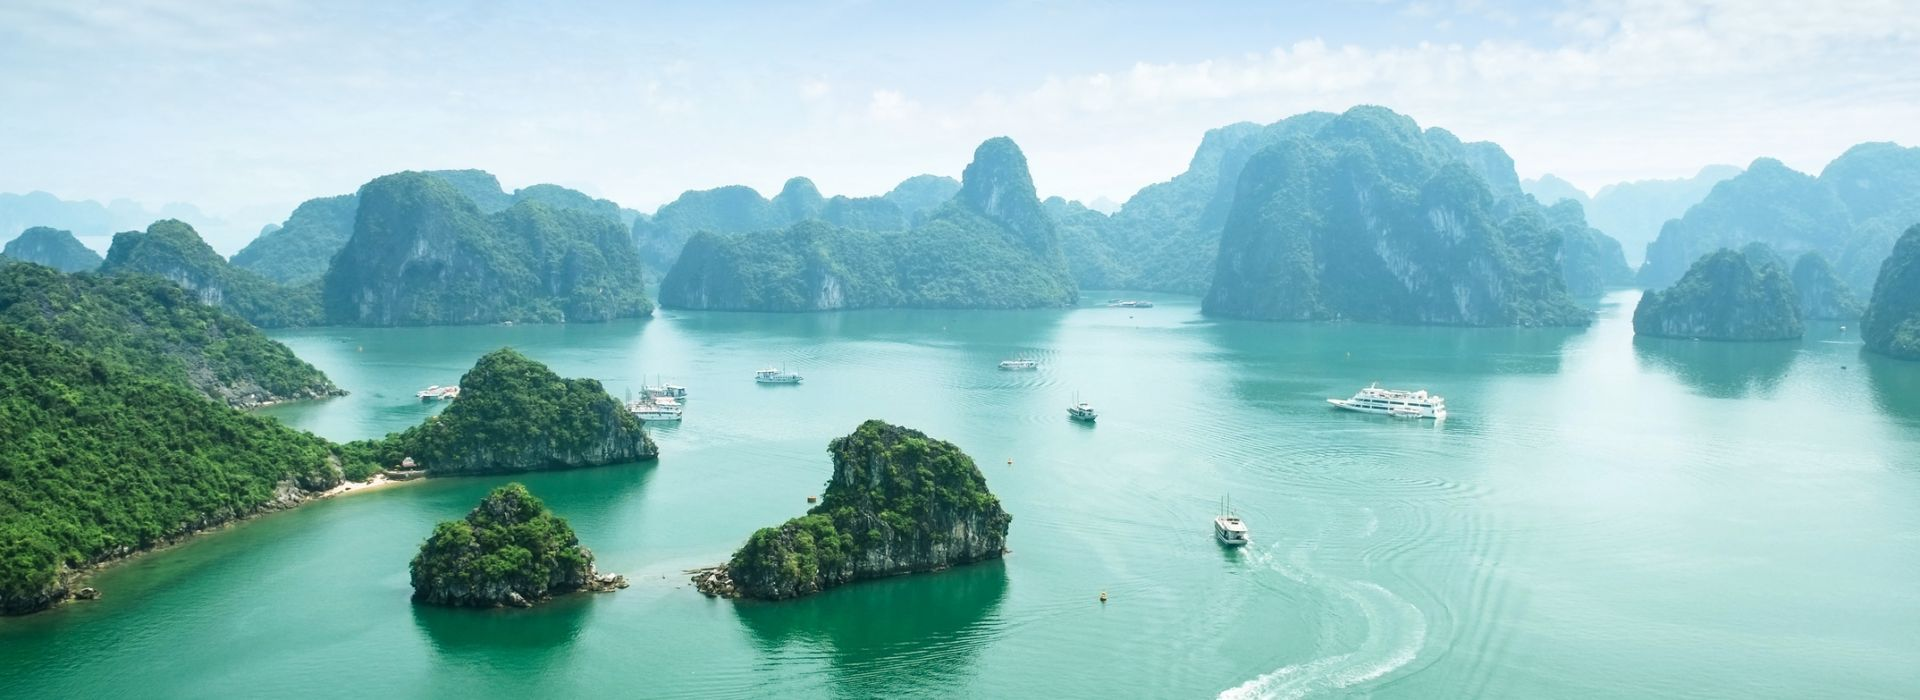 Culture shows and excursions Tours in Ho Chi Minh City